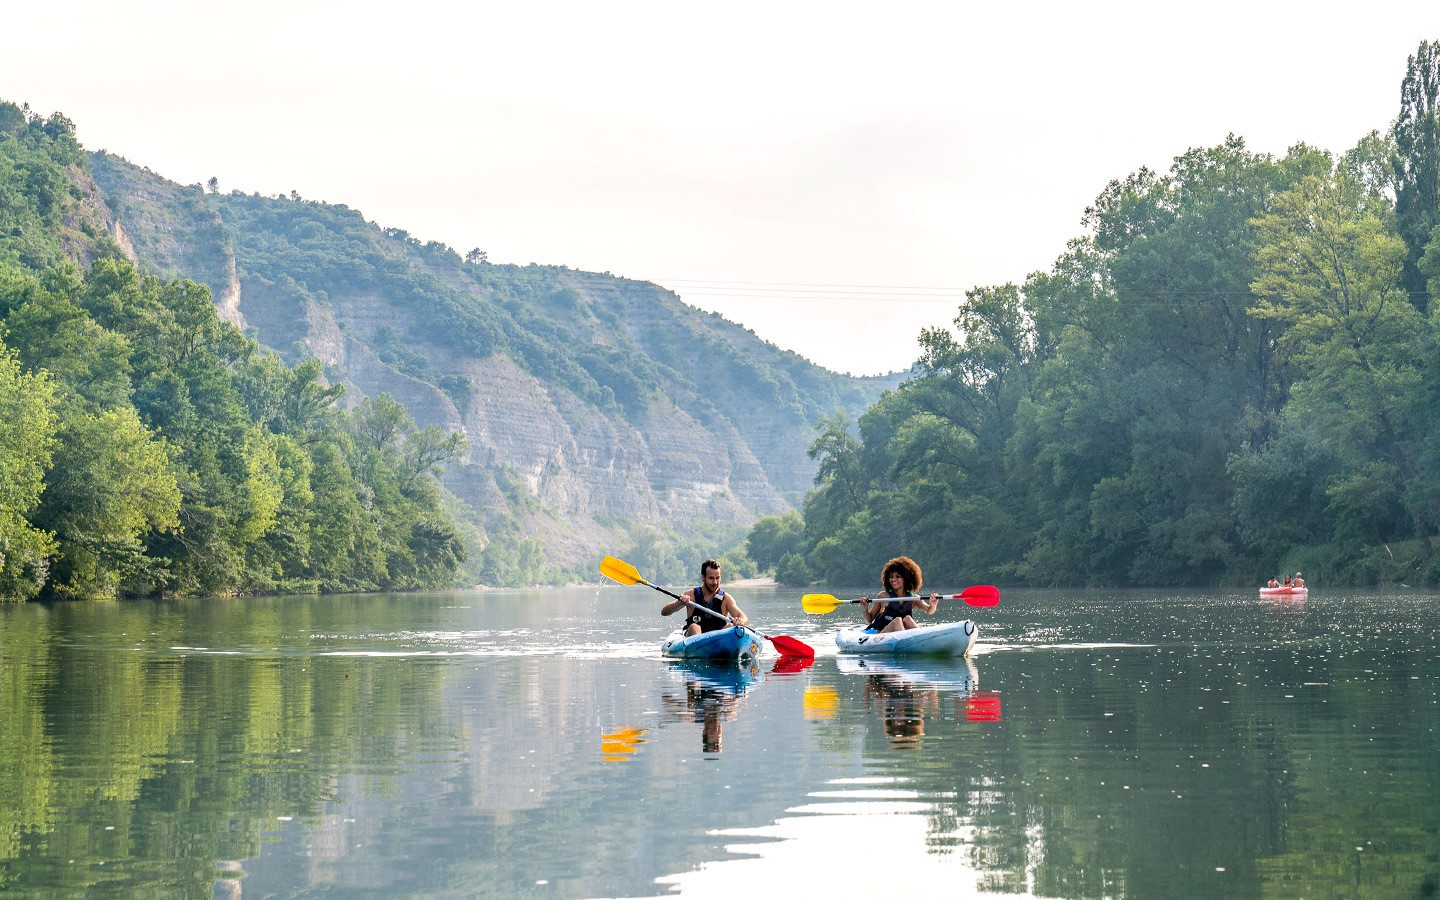 Two kayakers on the river in the Ardèche in France